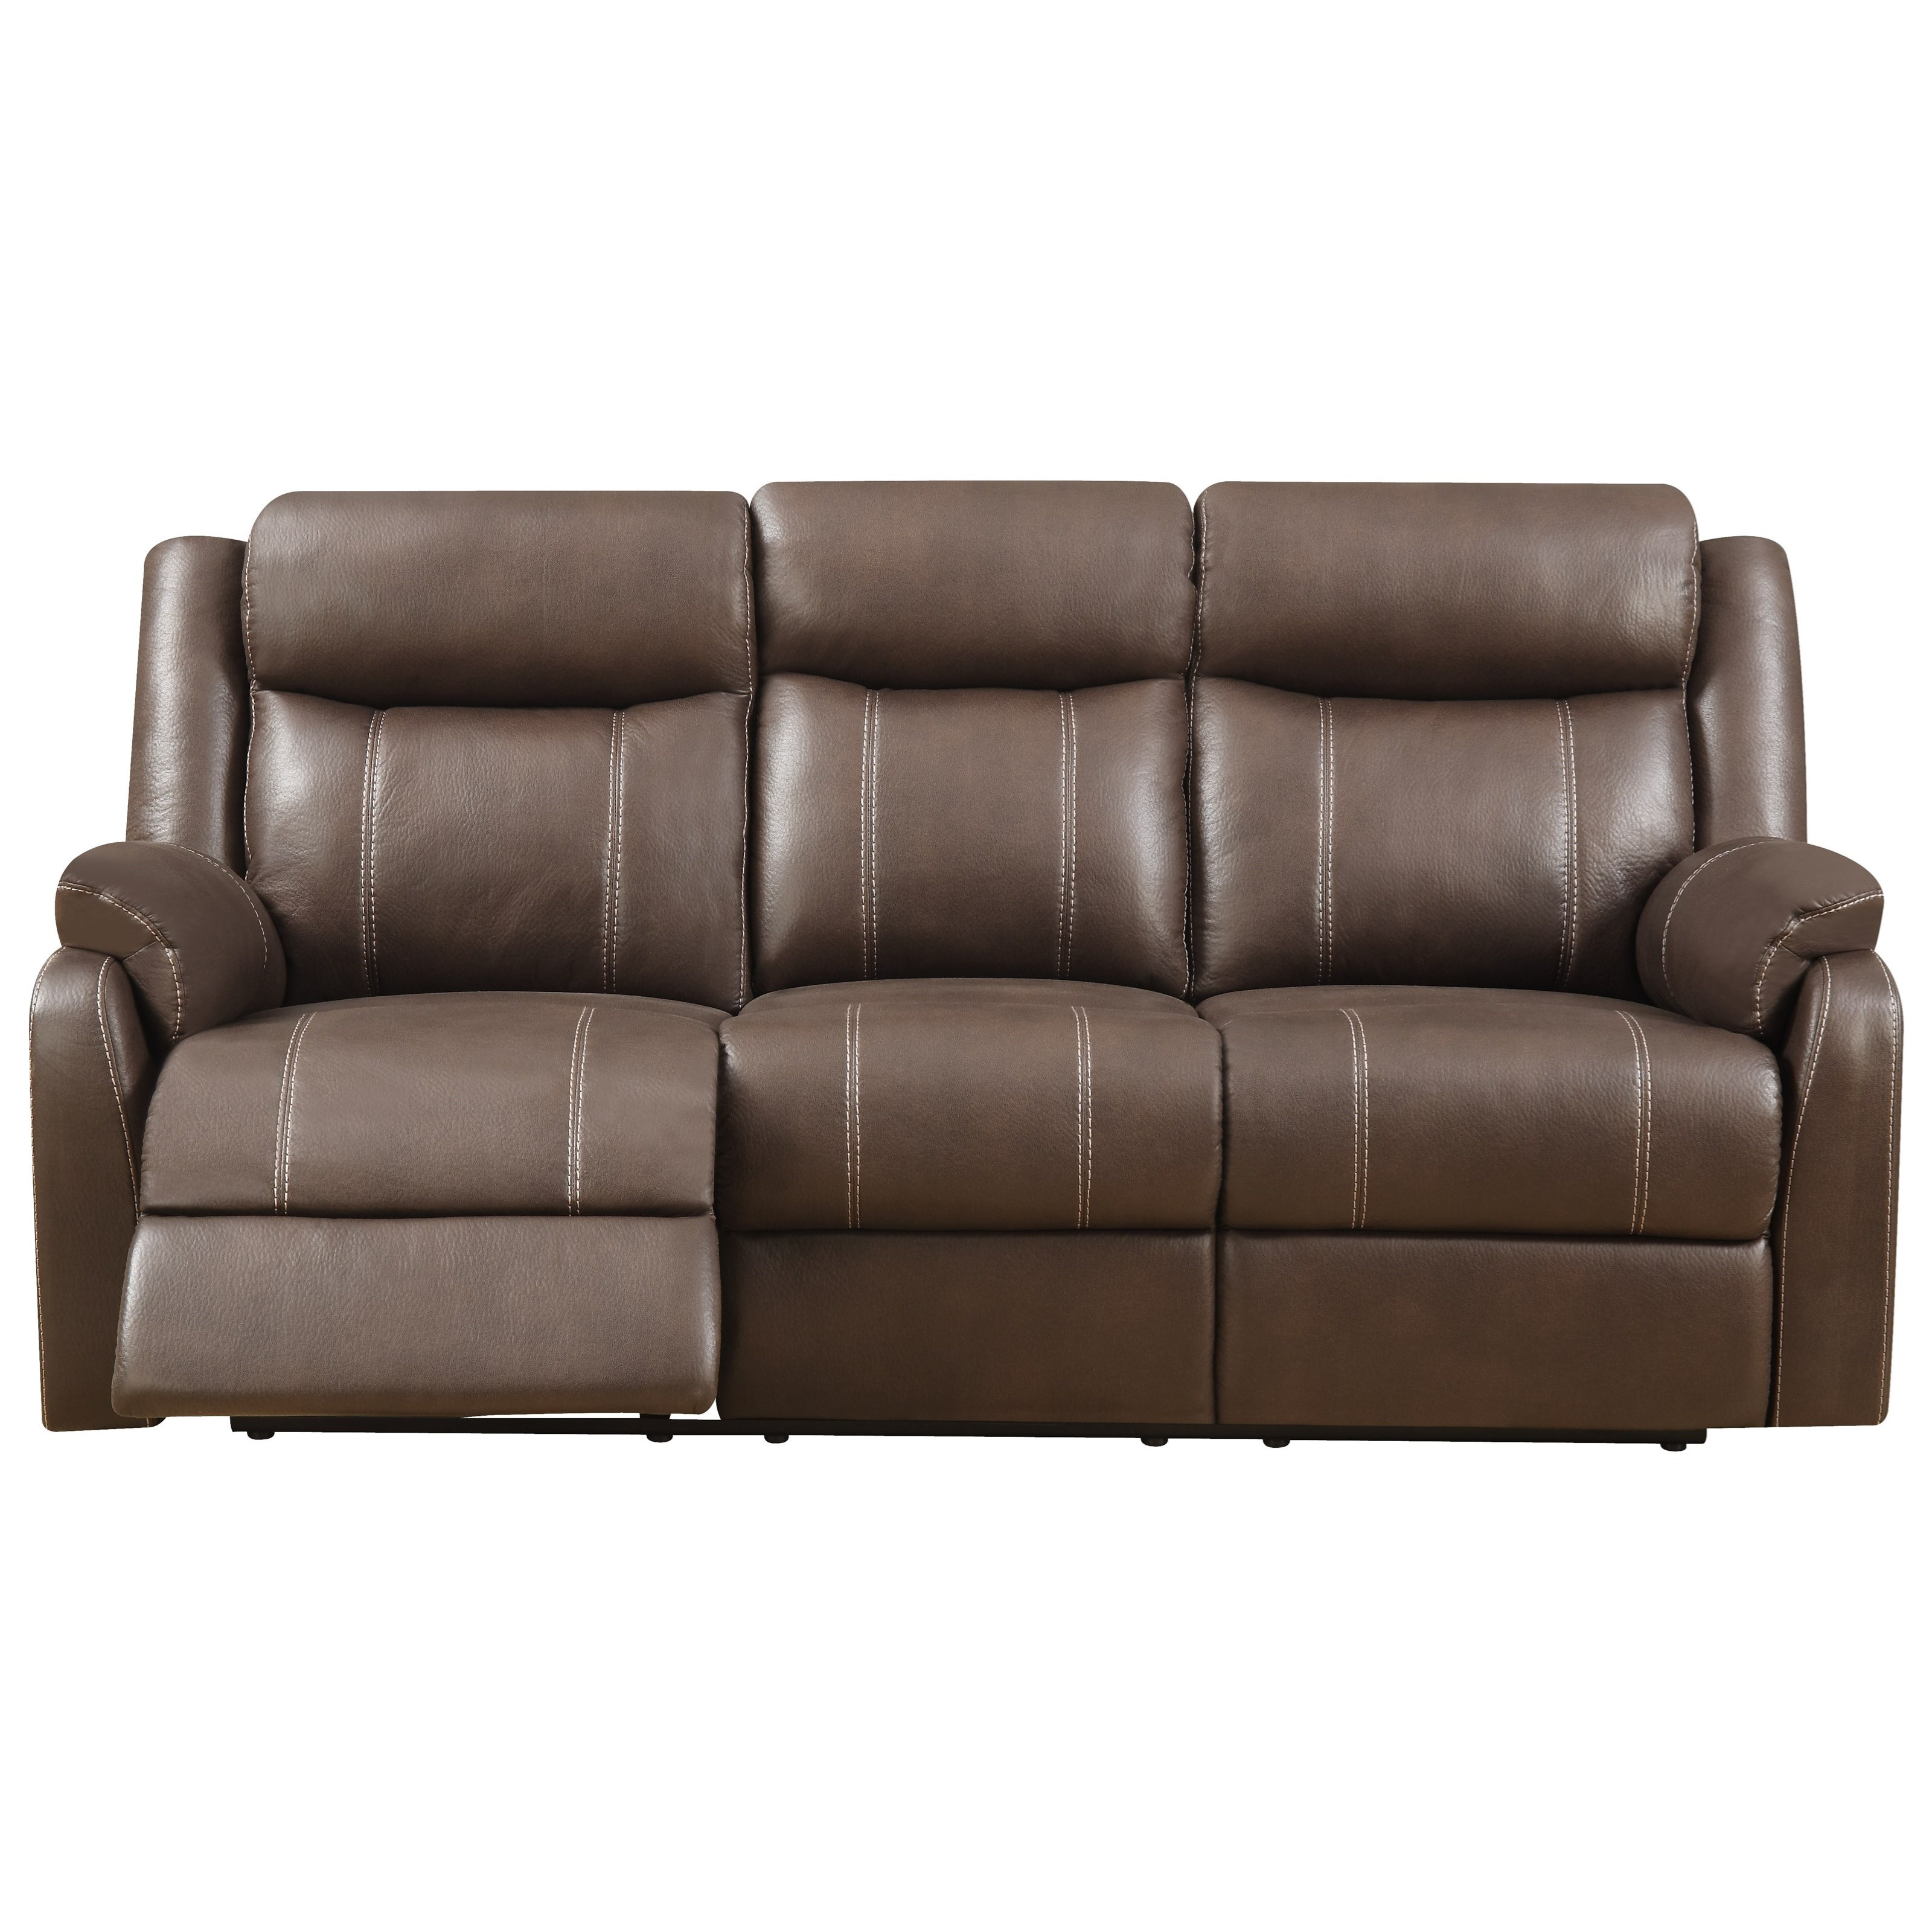 Klaussner International Domino Casual Reclining Sofa With